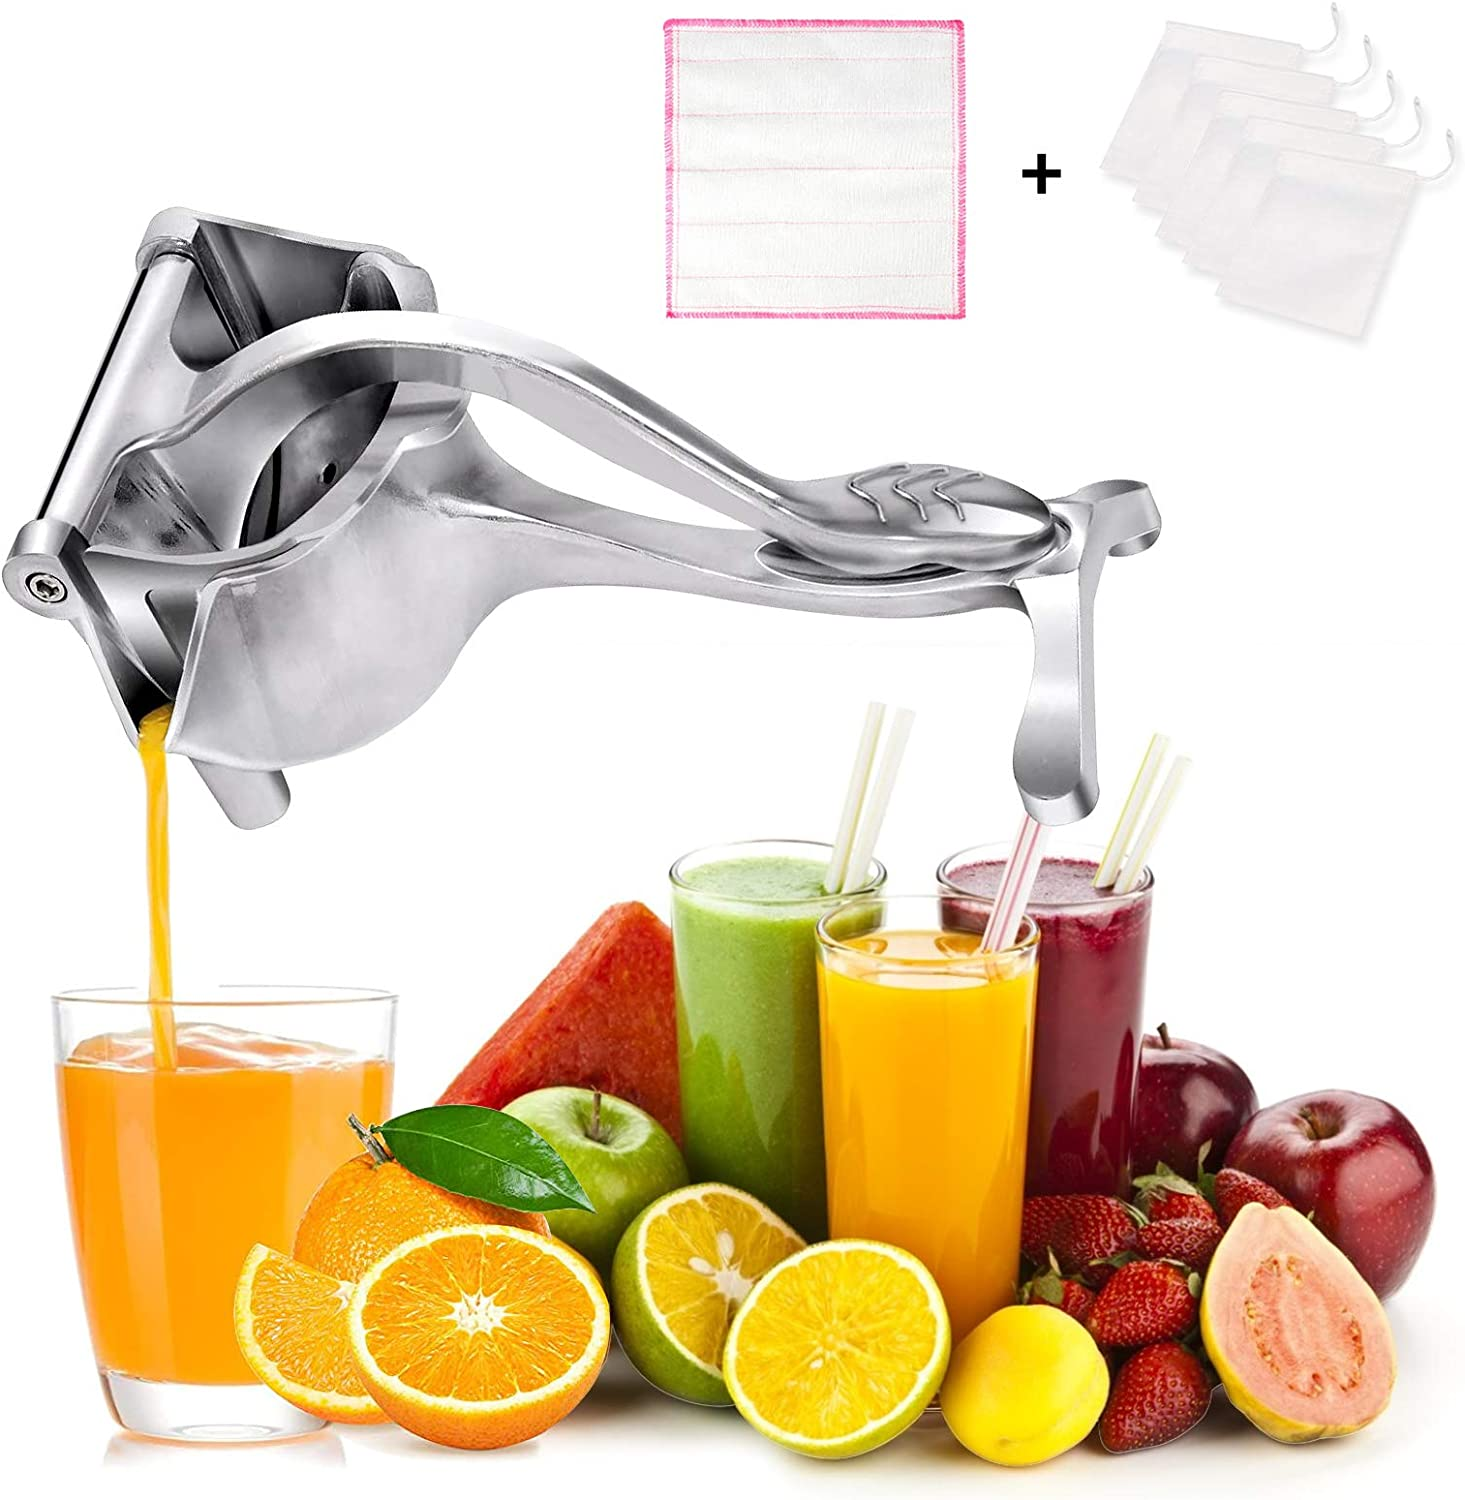 Heavy Duty Manual Fruit Juicer,Hand Squeezer, Manual Citrus Press Juicer, High-quality Aluminum Alloy Lemon Squeezer with 5 Filter Bags and 1 Rag,Easy to Clean